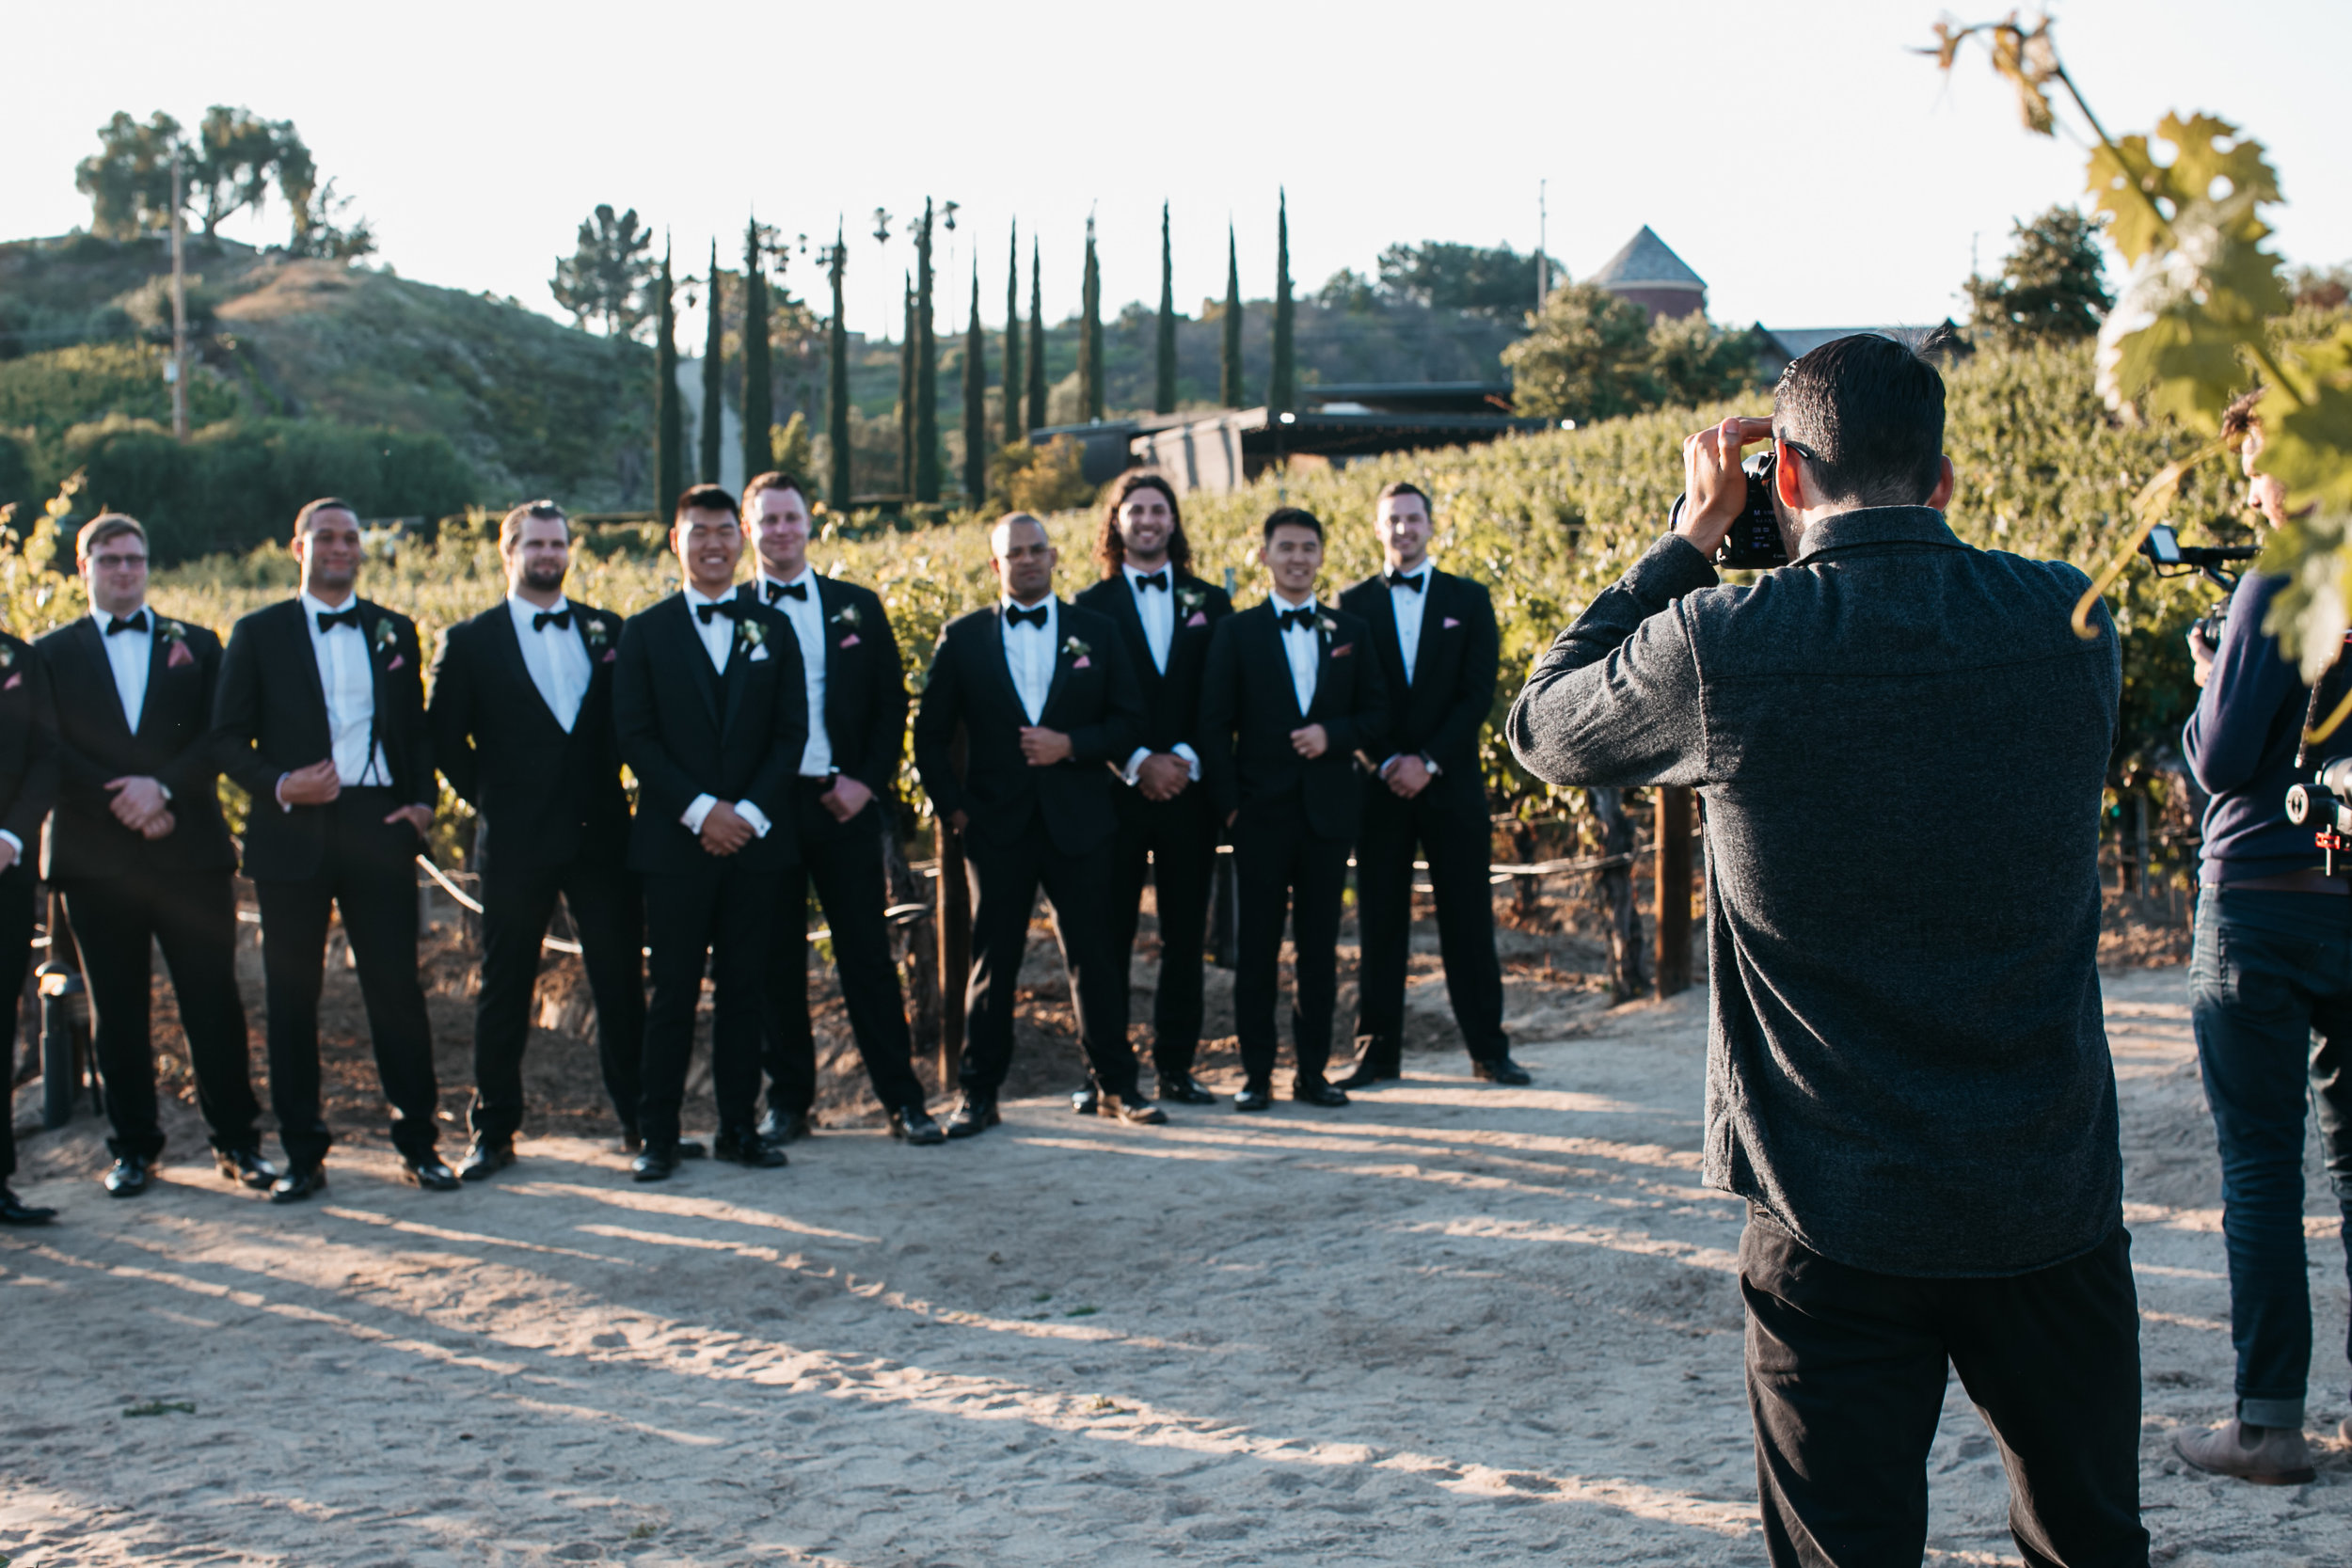 What sets us apart - We want our newlyweds to walk away with as much content as possible from their wedding day. Which is why my brand is set on delivering multiple films by default. YOUR INVESTMENT SHOULD BE WELL SPENT ON YOUR PRECIOUS MEMORIES.